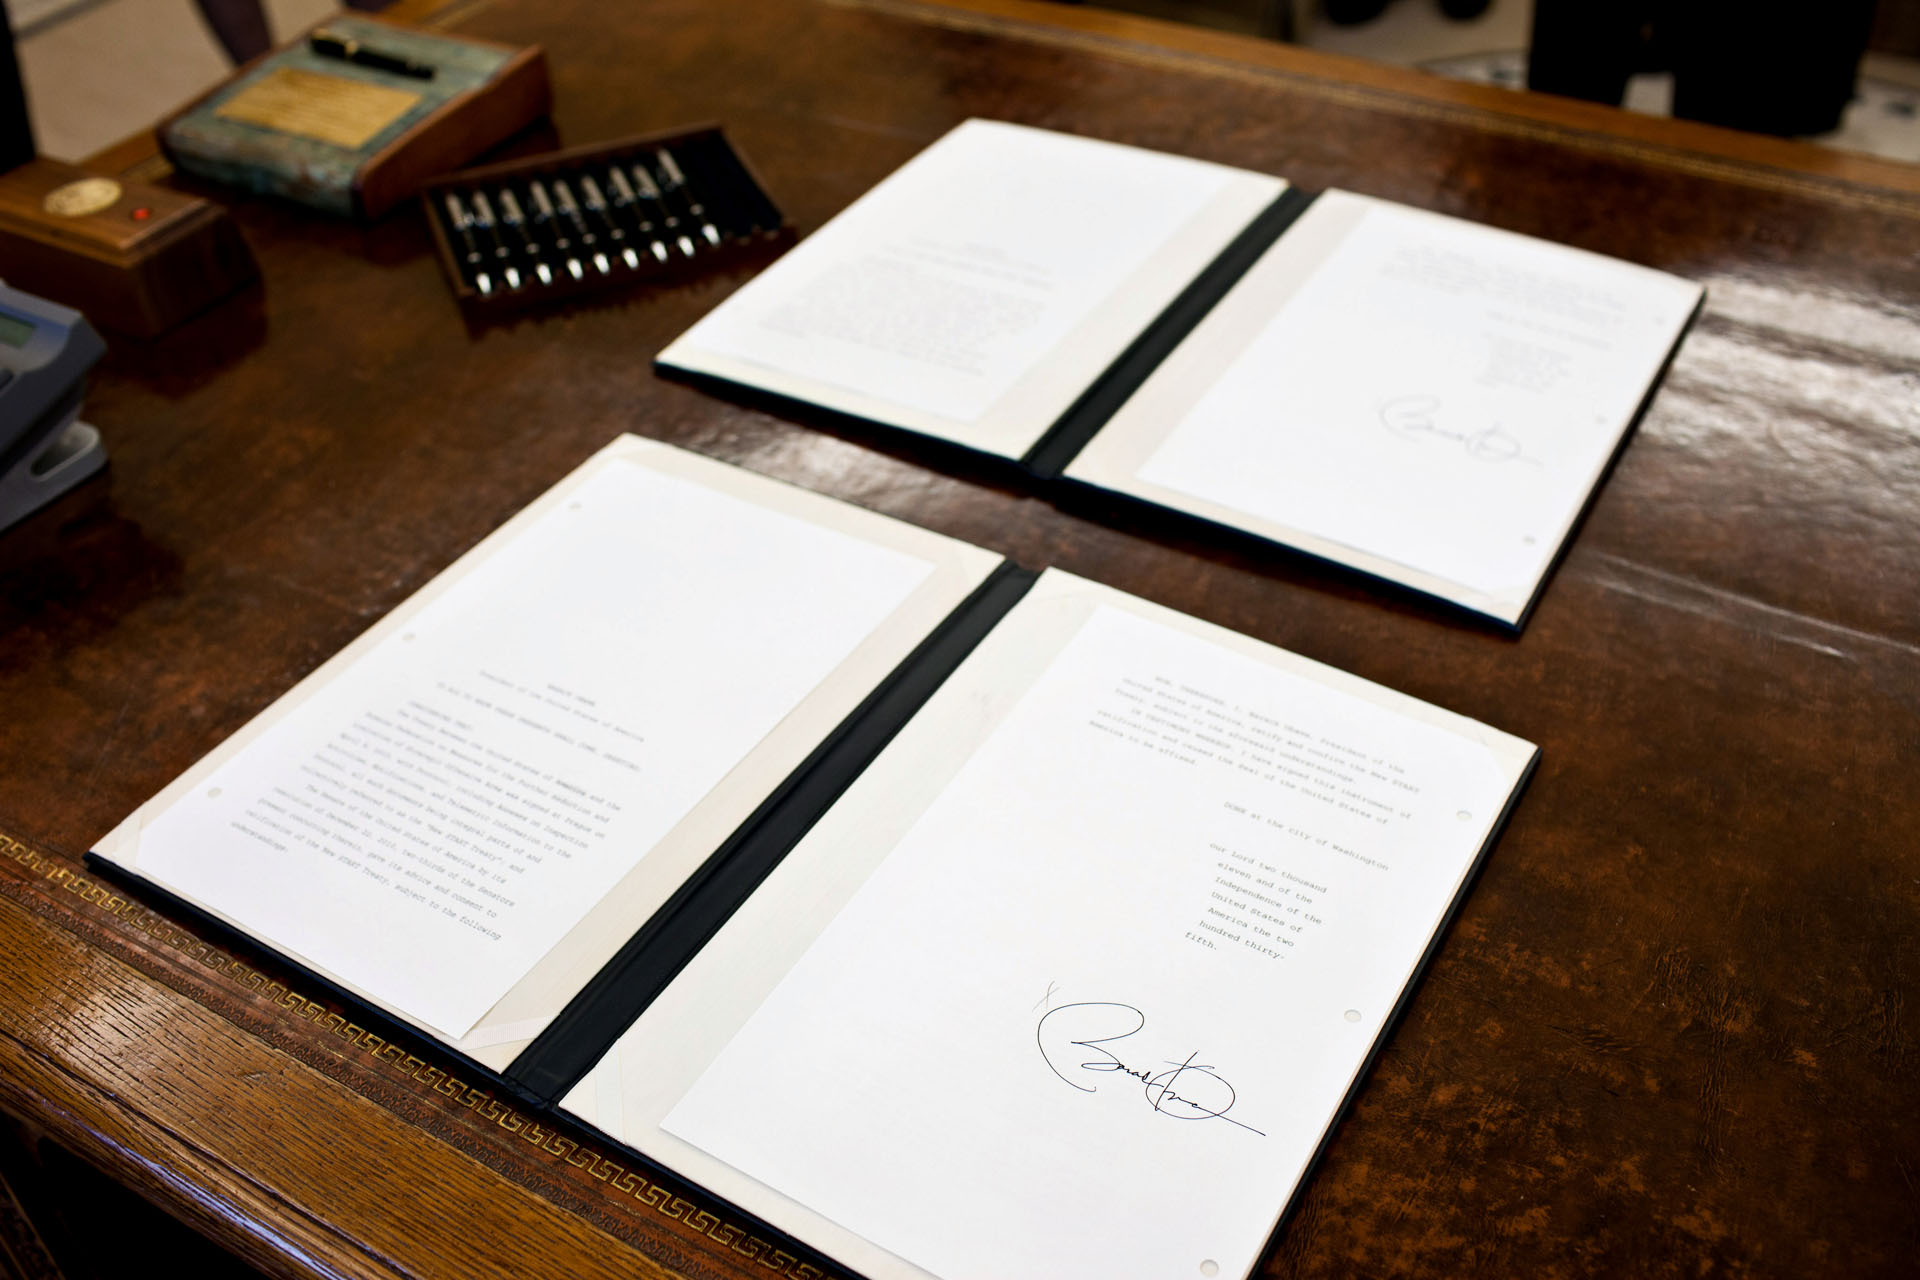 President Obama's Signature on New START Treaty